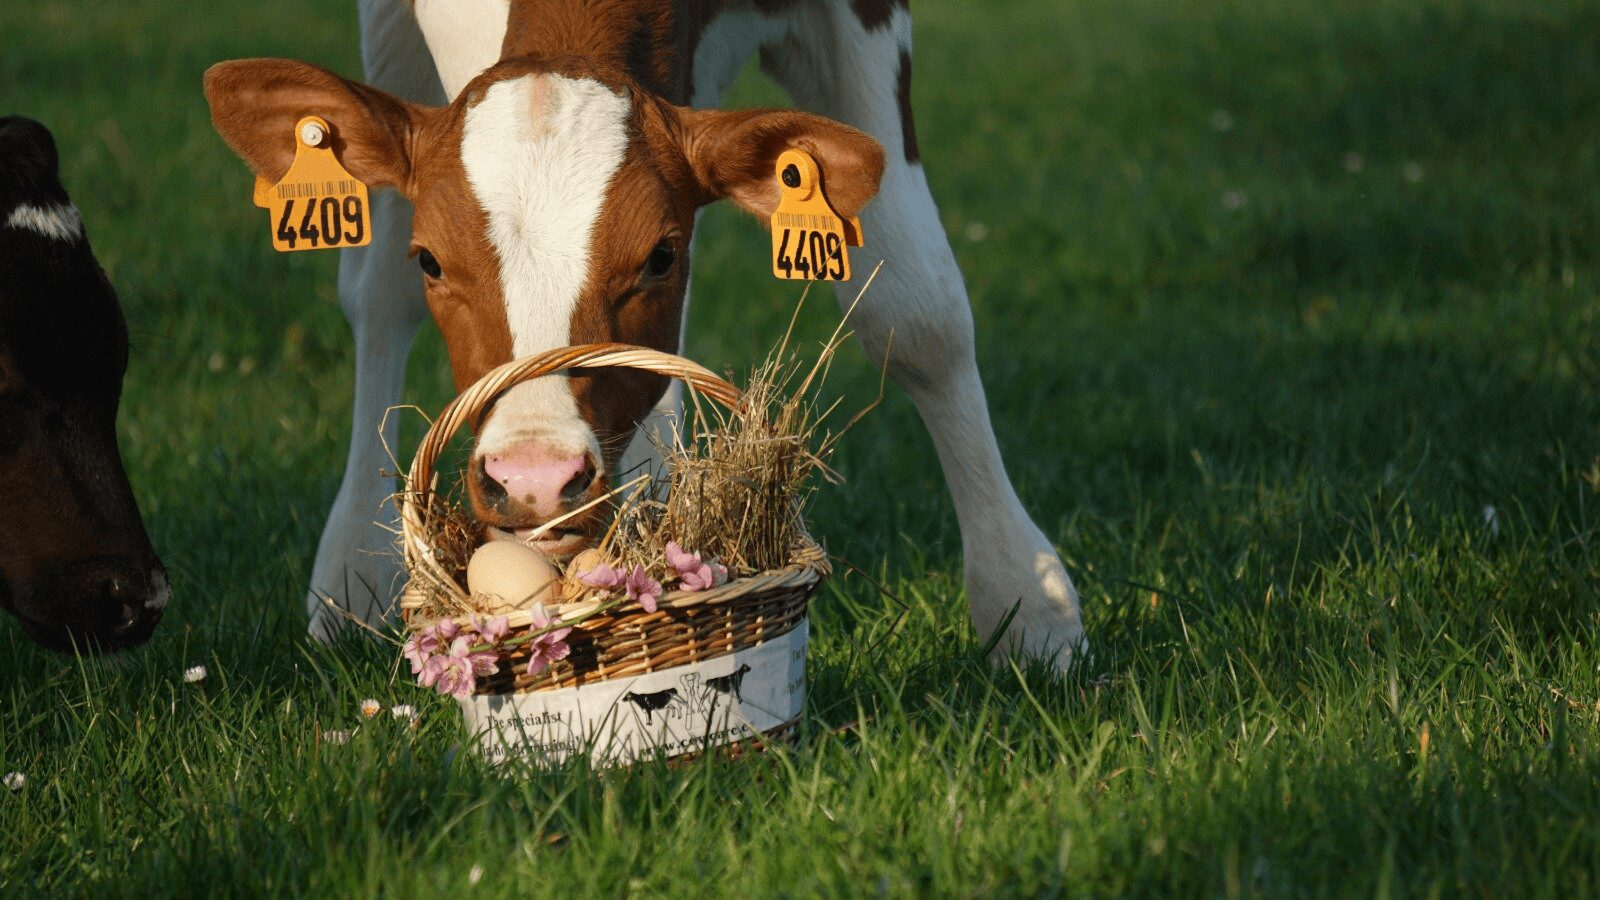 CowCare wish you all a Happy and Healthy Easter